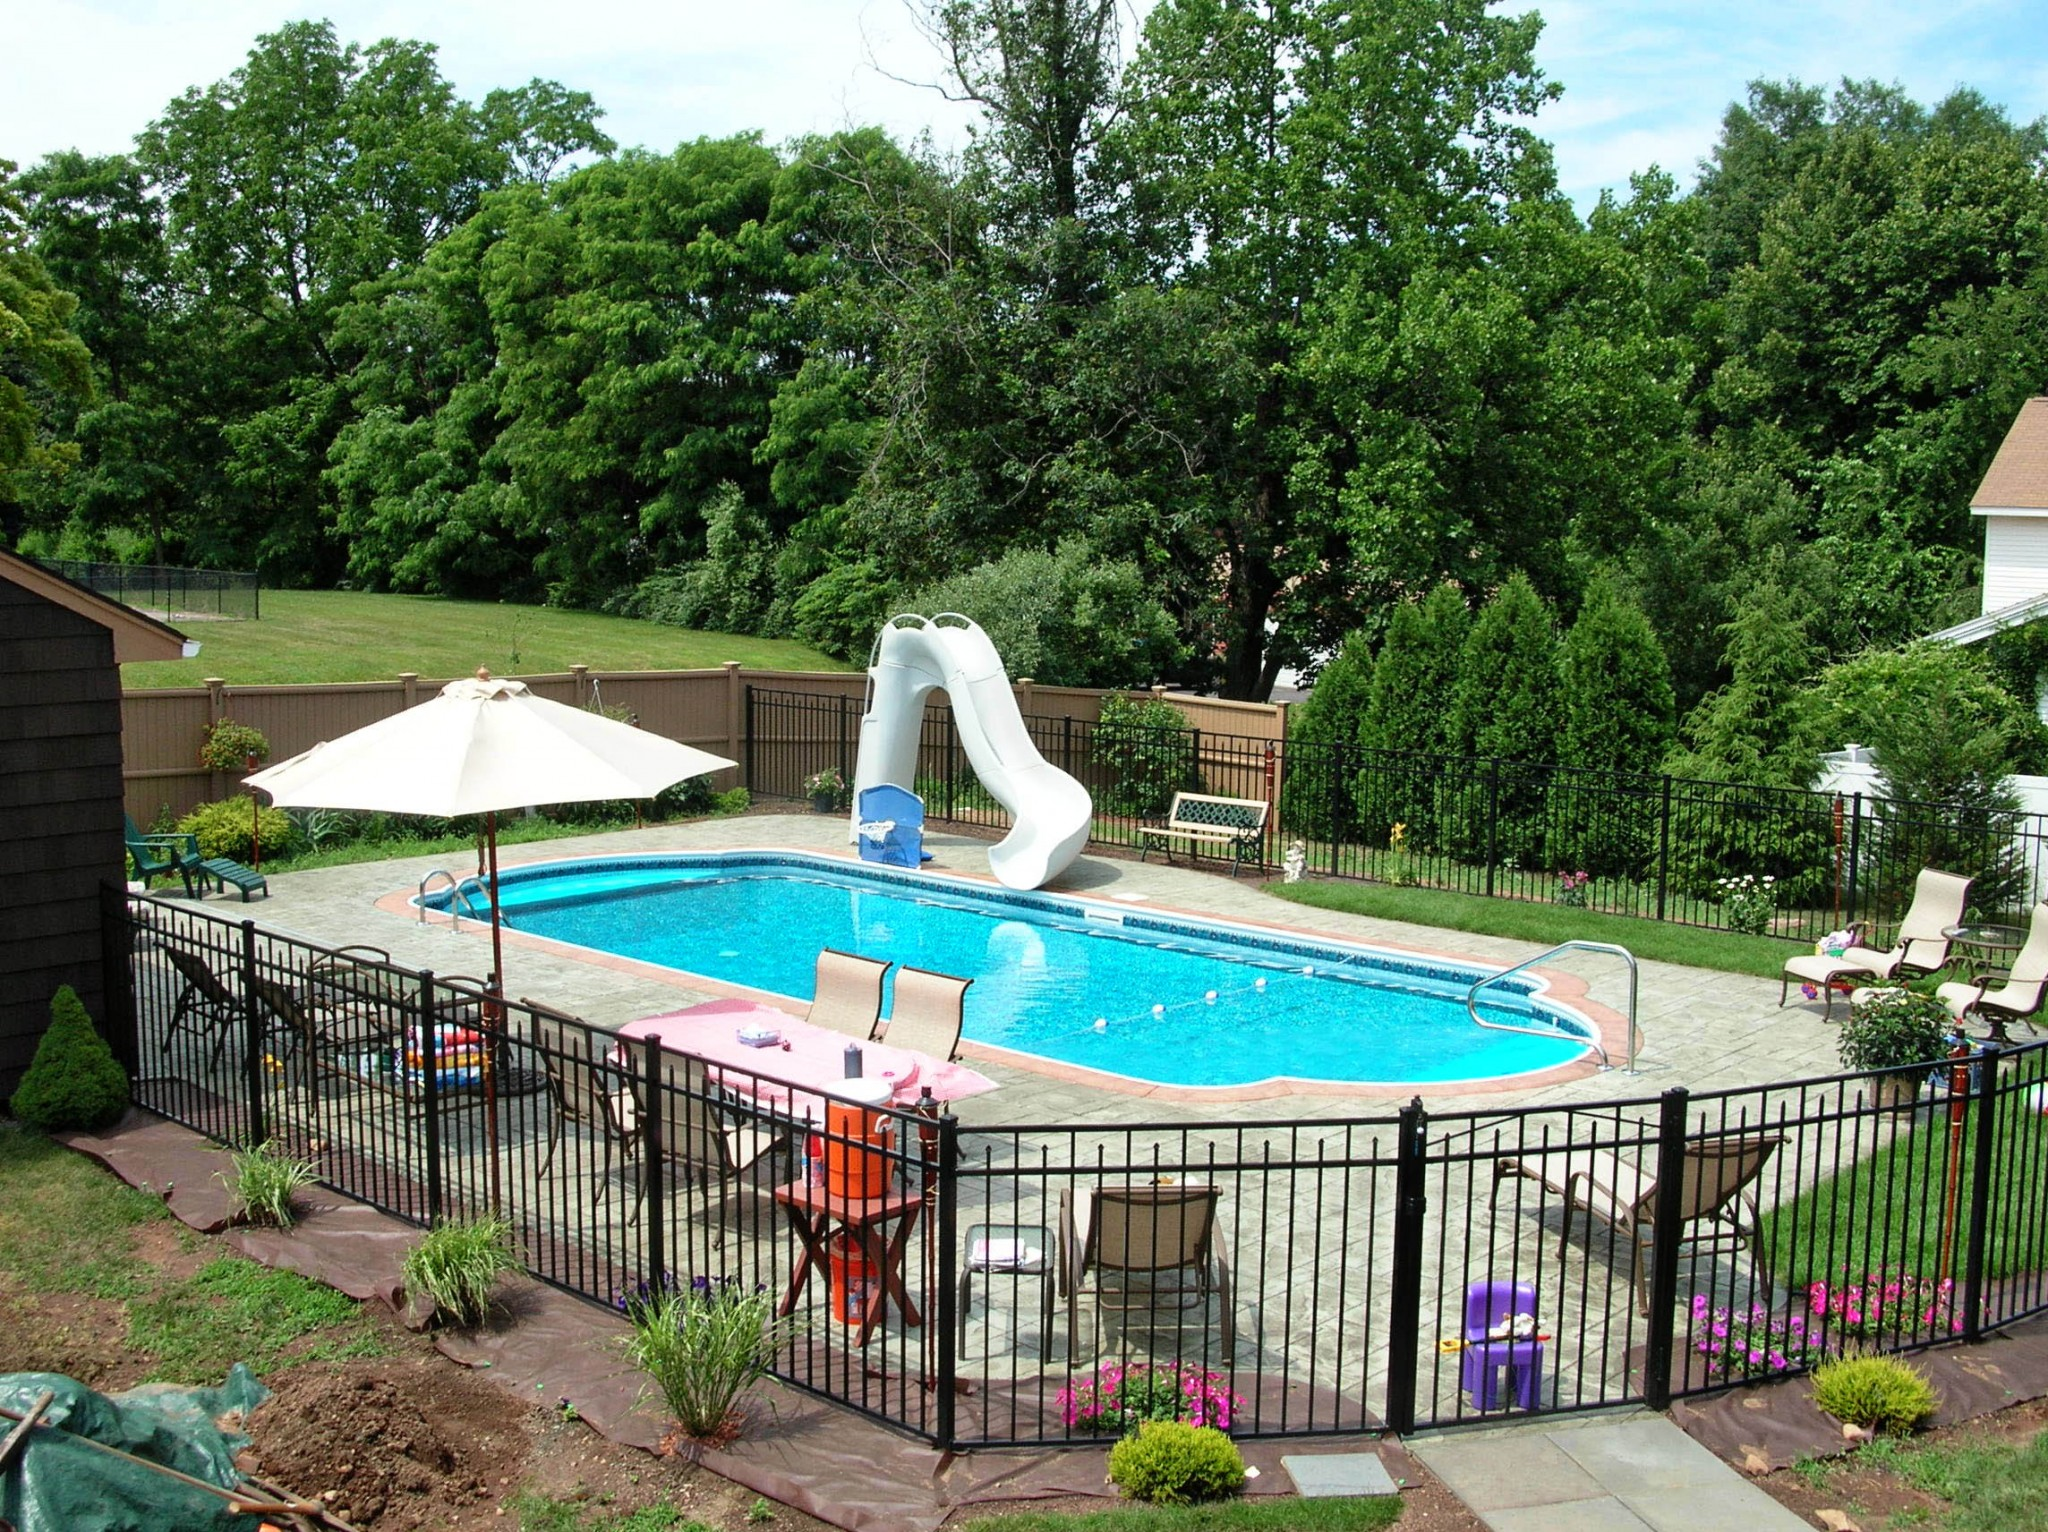 Inground Pool Patio Designs best 25 semi inground pools ideas on pinterest semi inground pool deck small inground pool and stone around pool Inground Pool Fence Ideas Saveemail Guardian Pool Fence Systems Swimming Pools Simple Inground Pool Designs